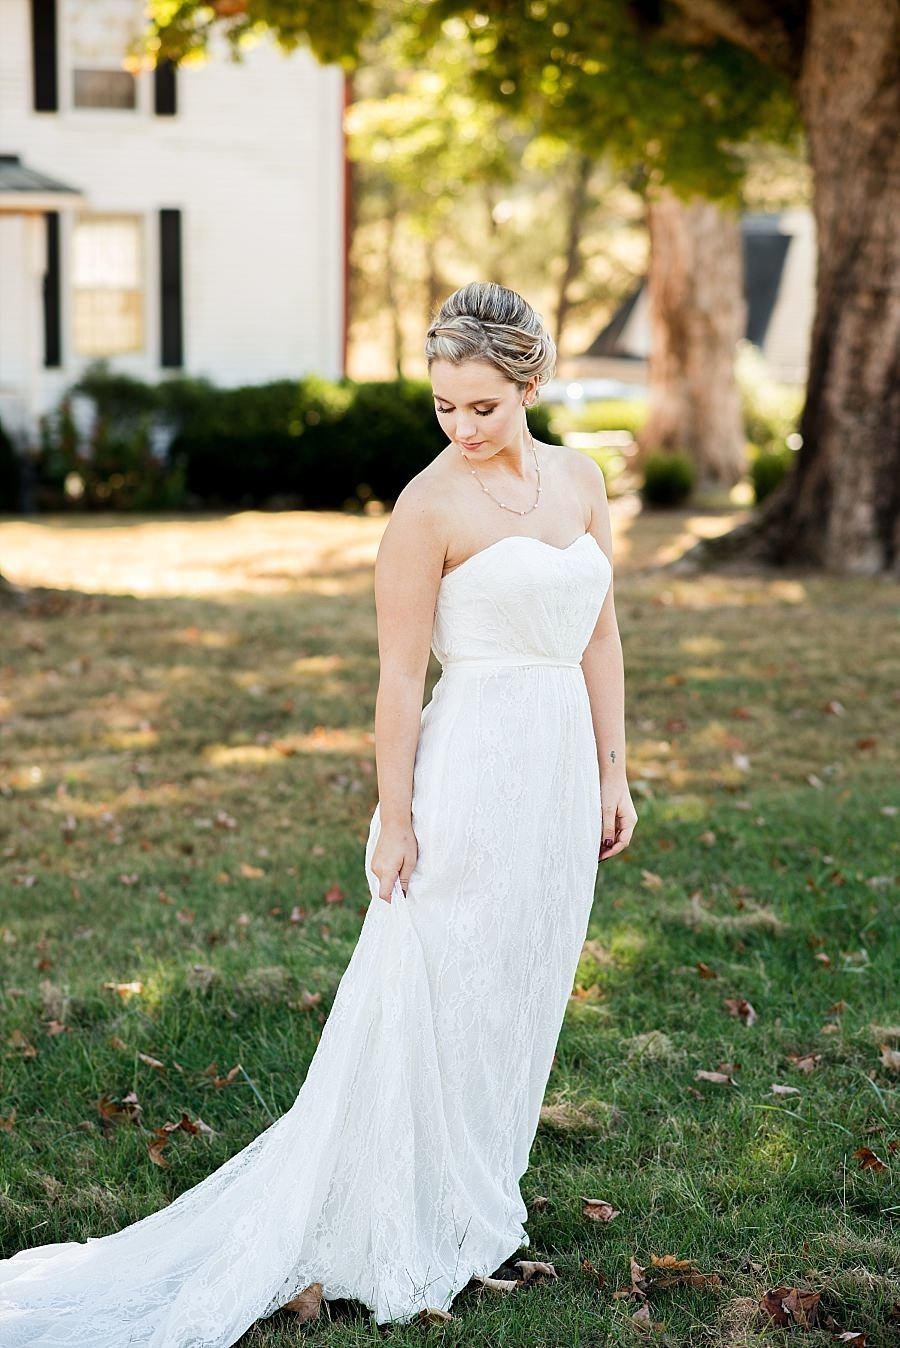 Elegant bride in a strapless sweetheart dress